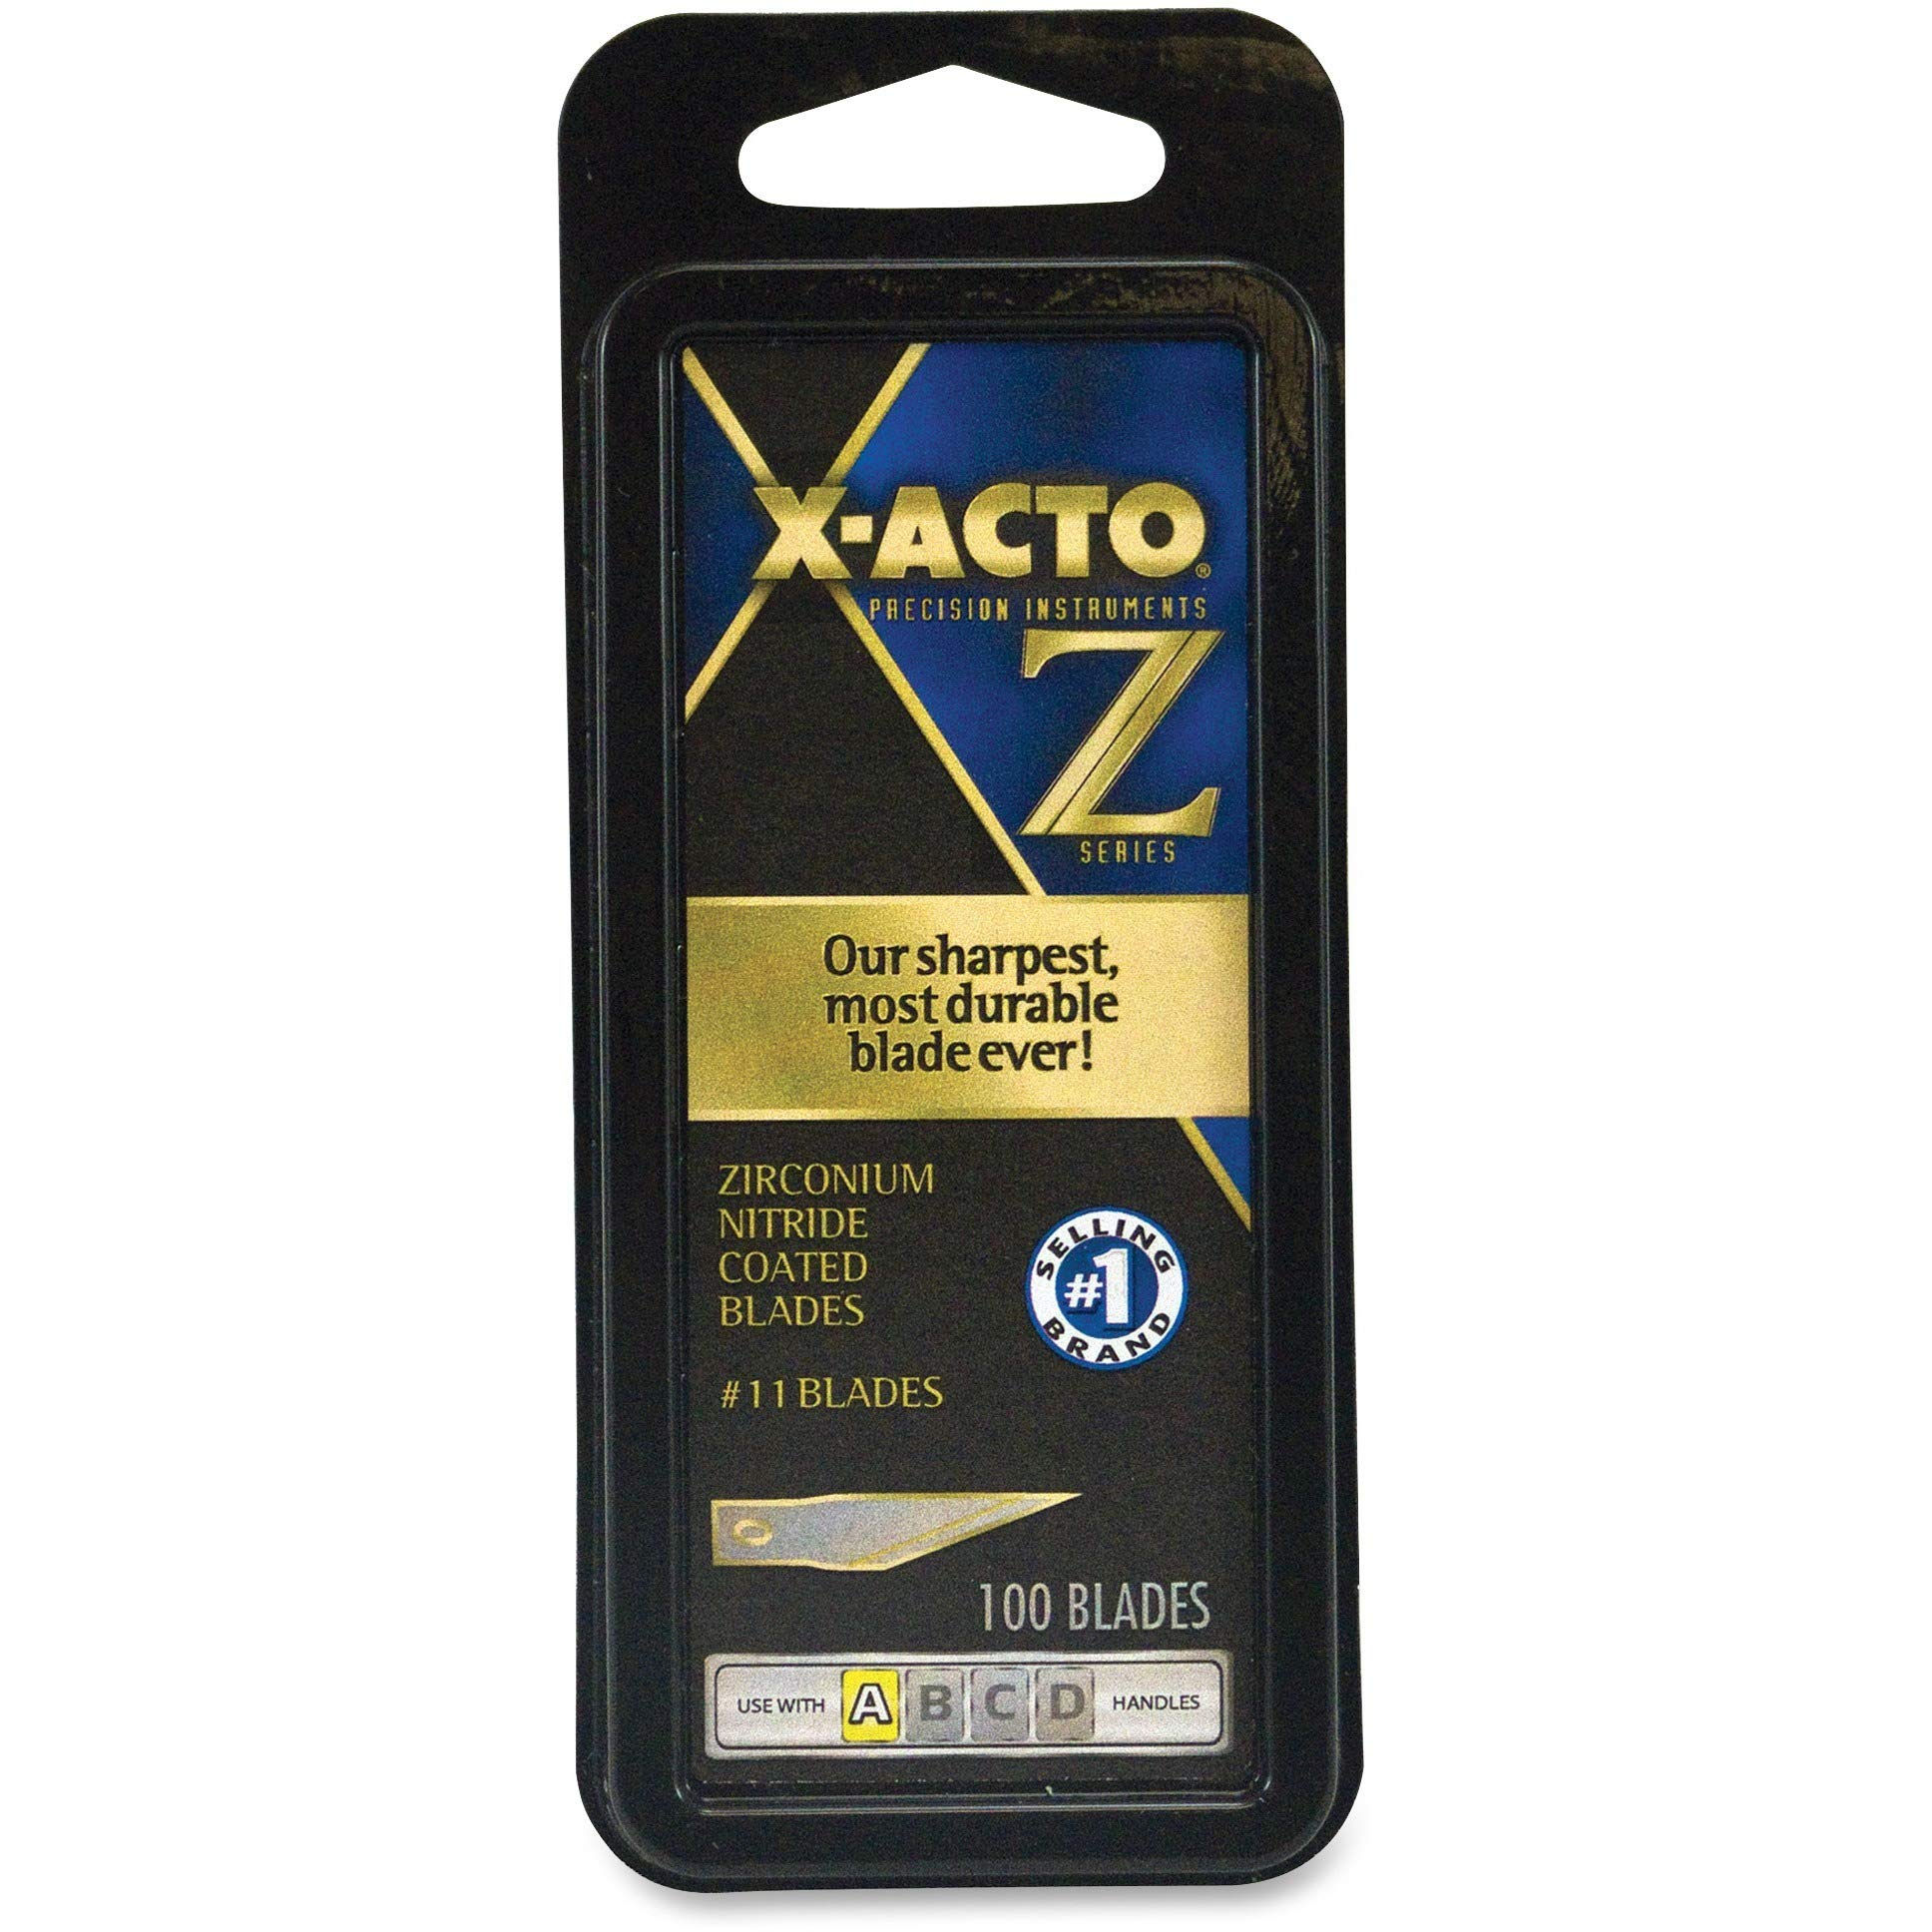 X-ACTO XZ611 100 Pc. Classic Fine Point Blade by X-Acto